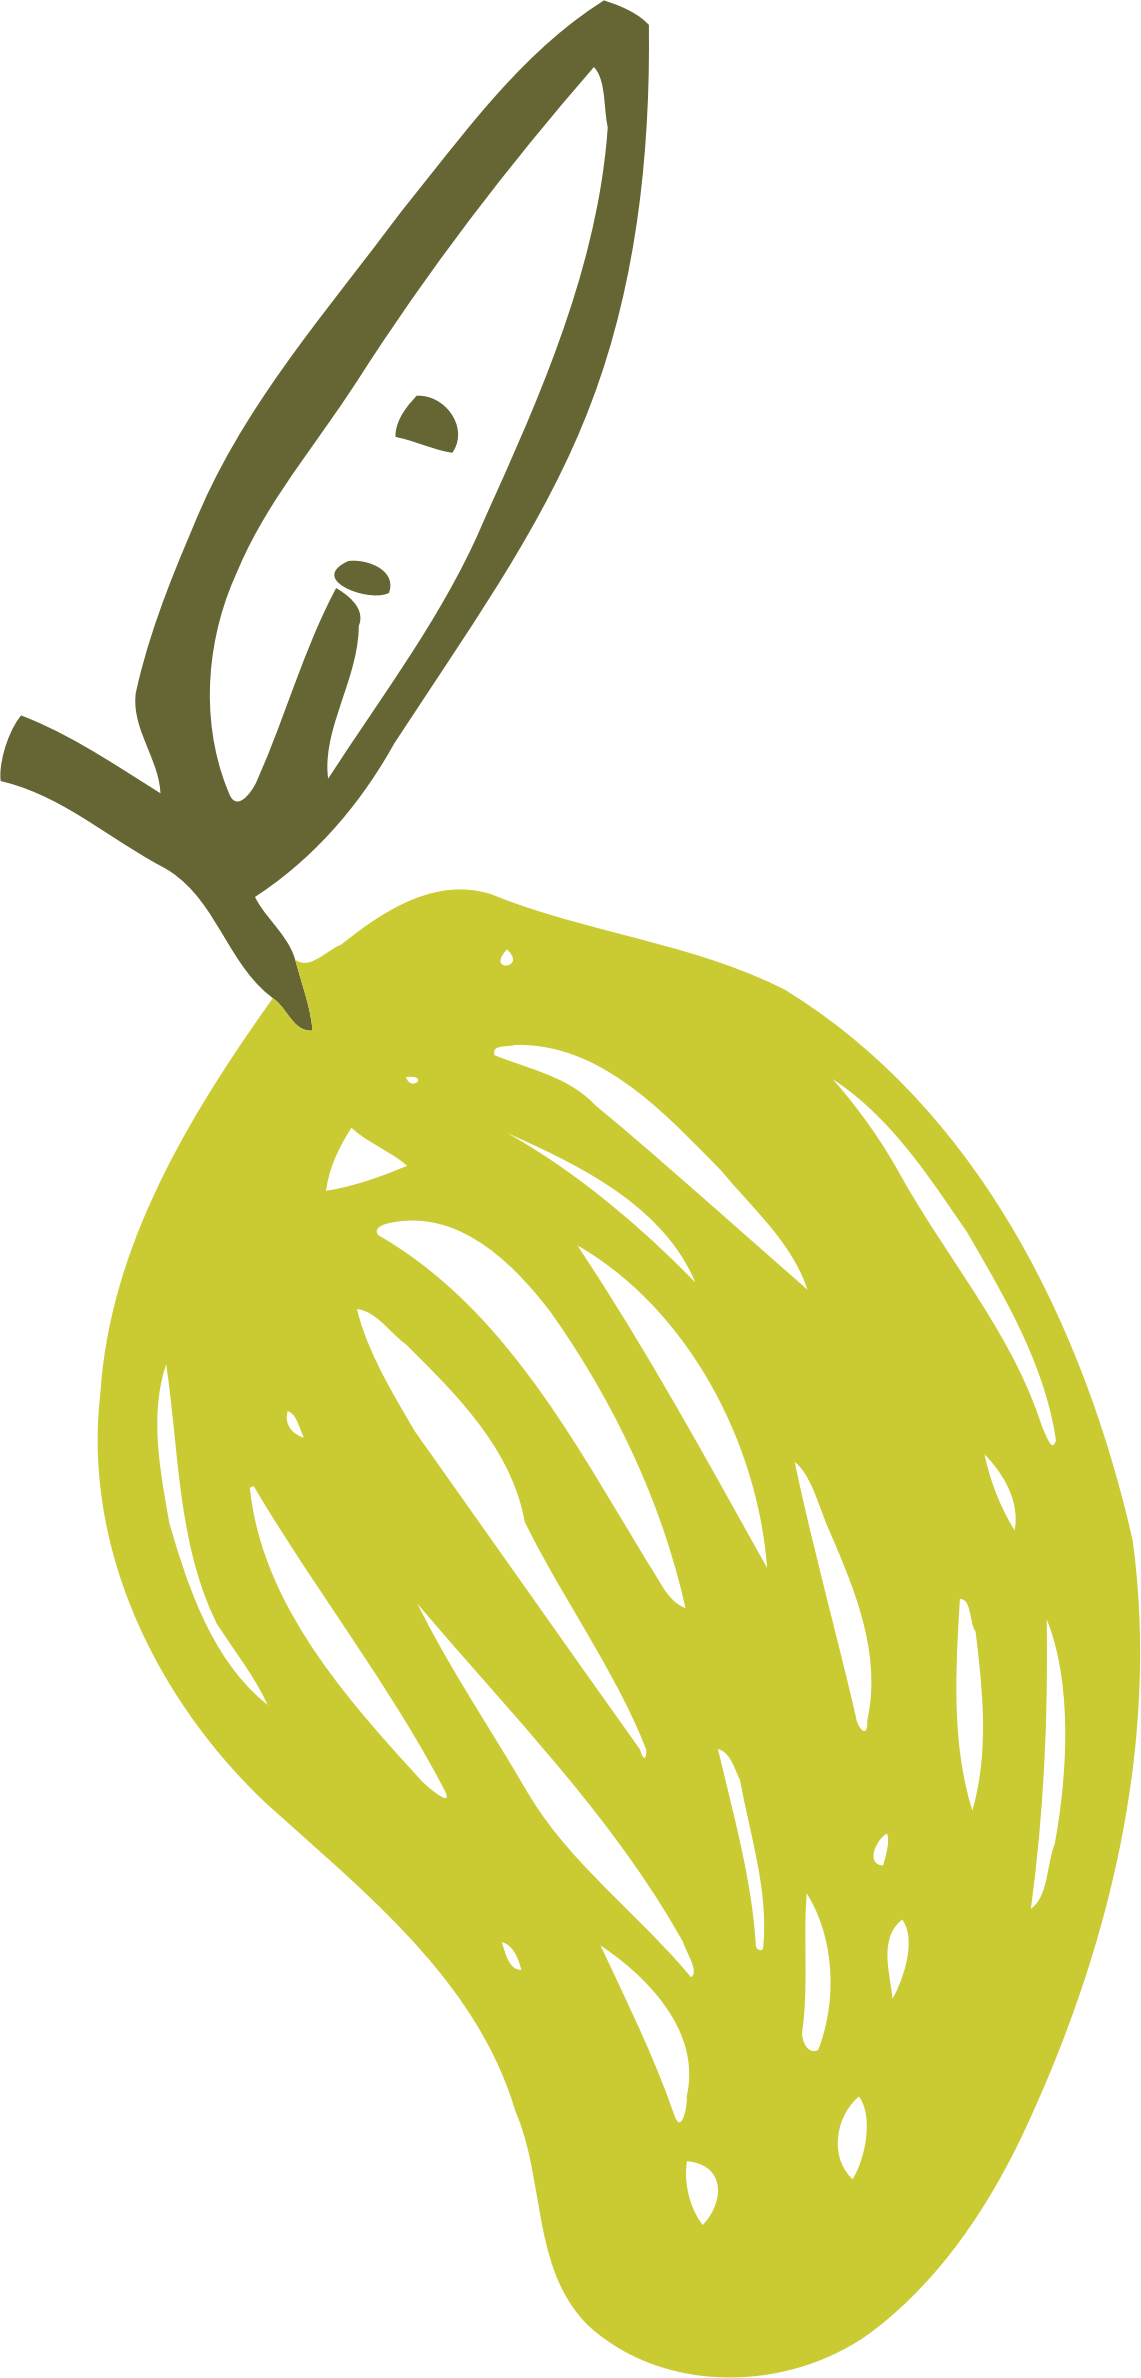 Sketched pear by Firkin